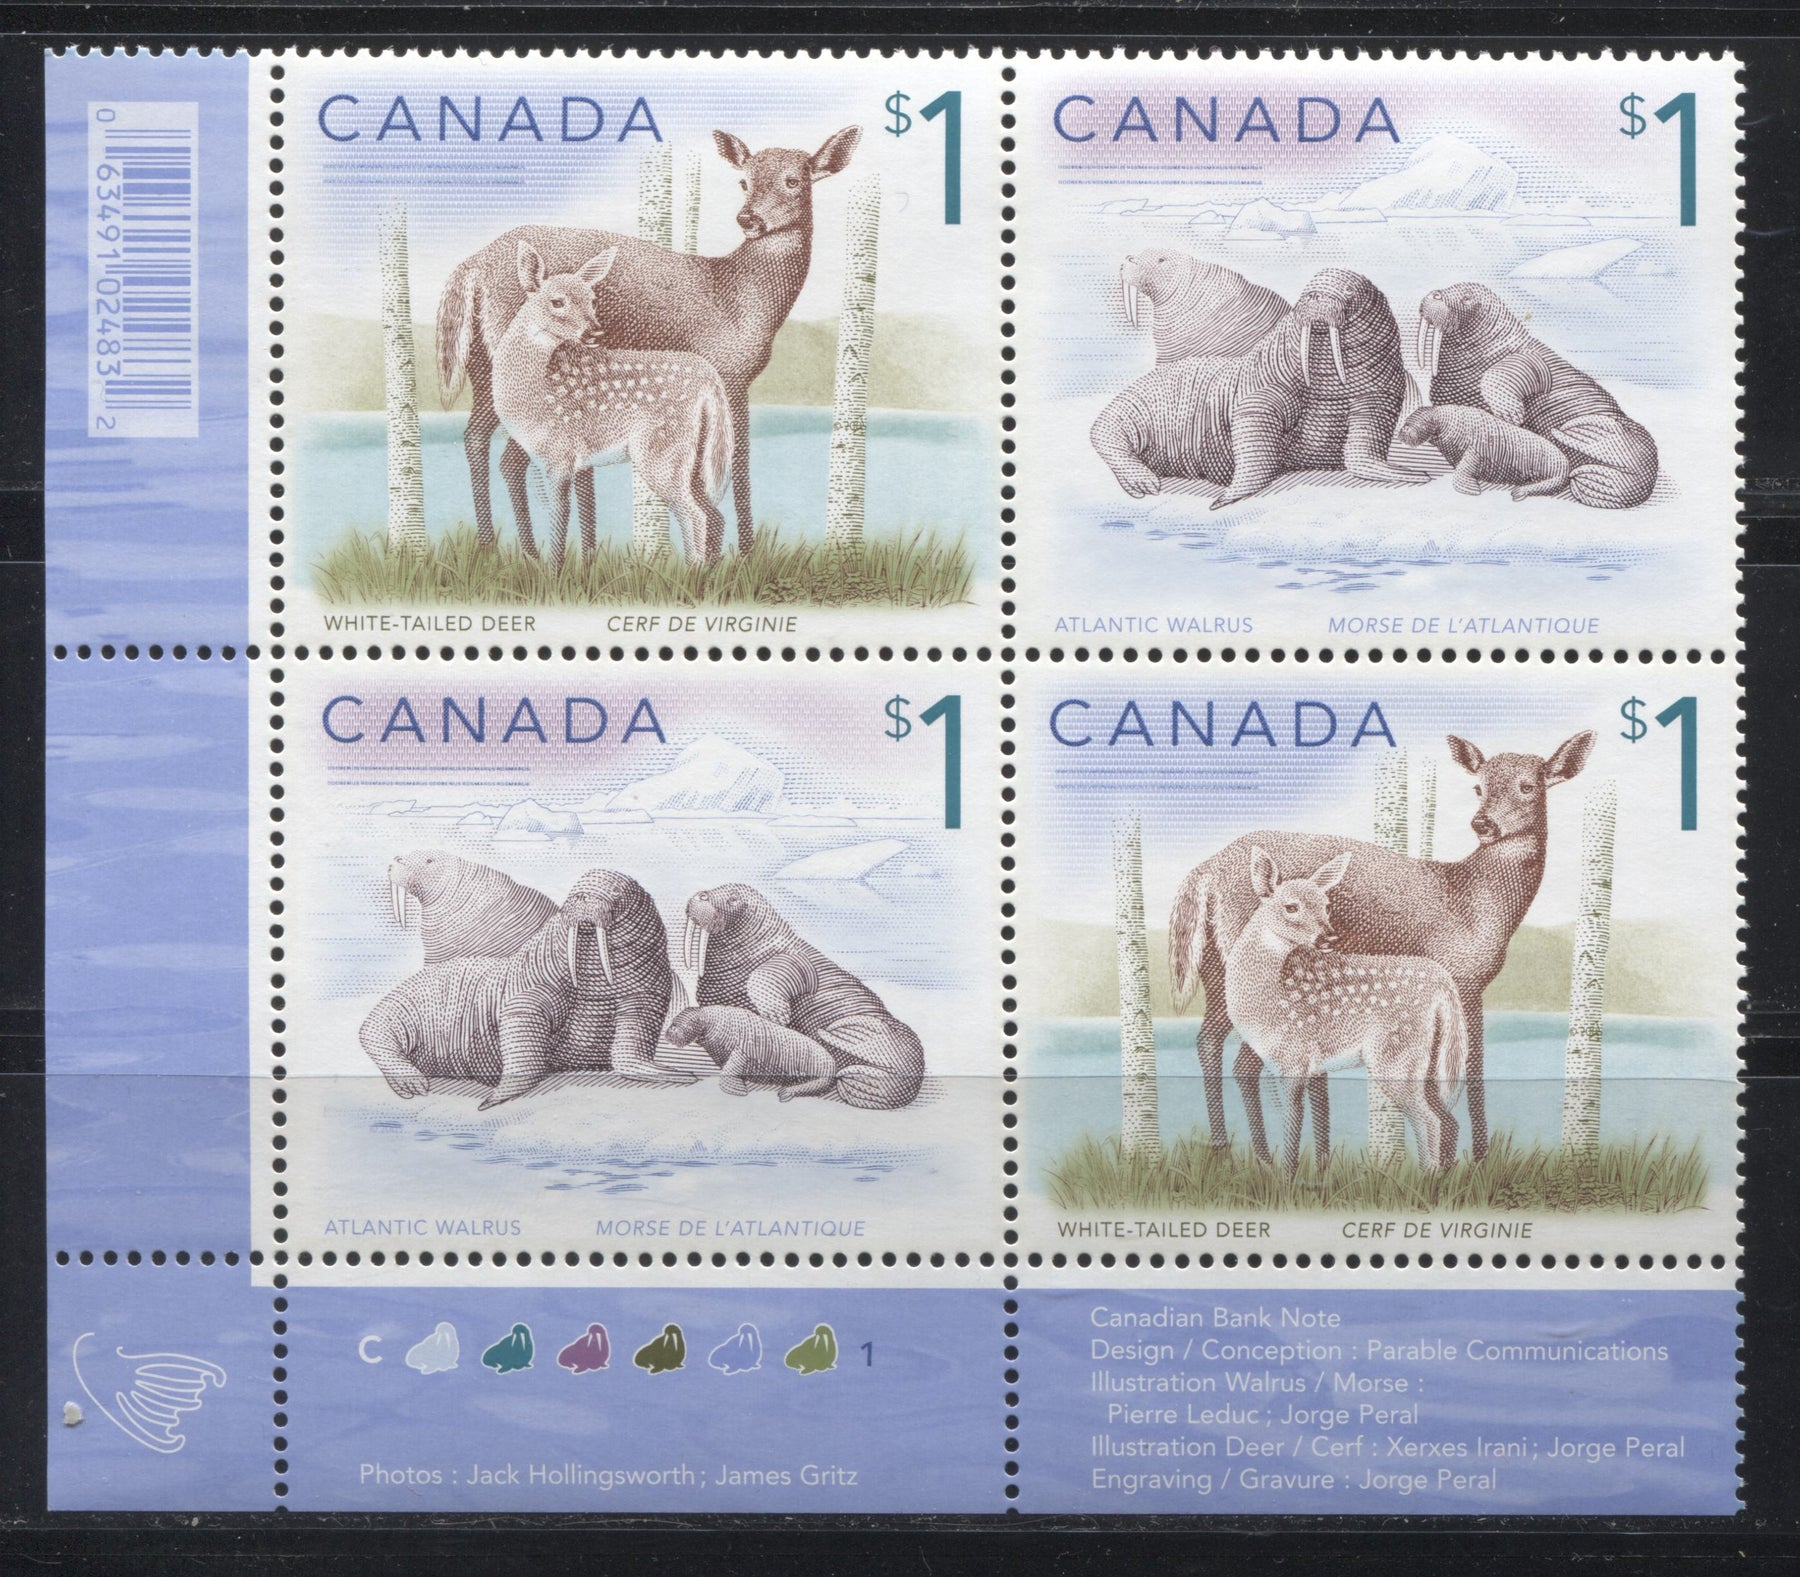 Canada #1689ai $1 Multicoloured, White Tailed Deer & Atlantic Walrus, 1998-2005 Trades and Wildlife Issue, a VF NH LL 2009 Reprint Plate Block Printed on Dead/NF Coated Papers Paper